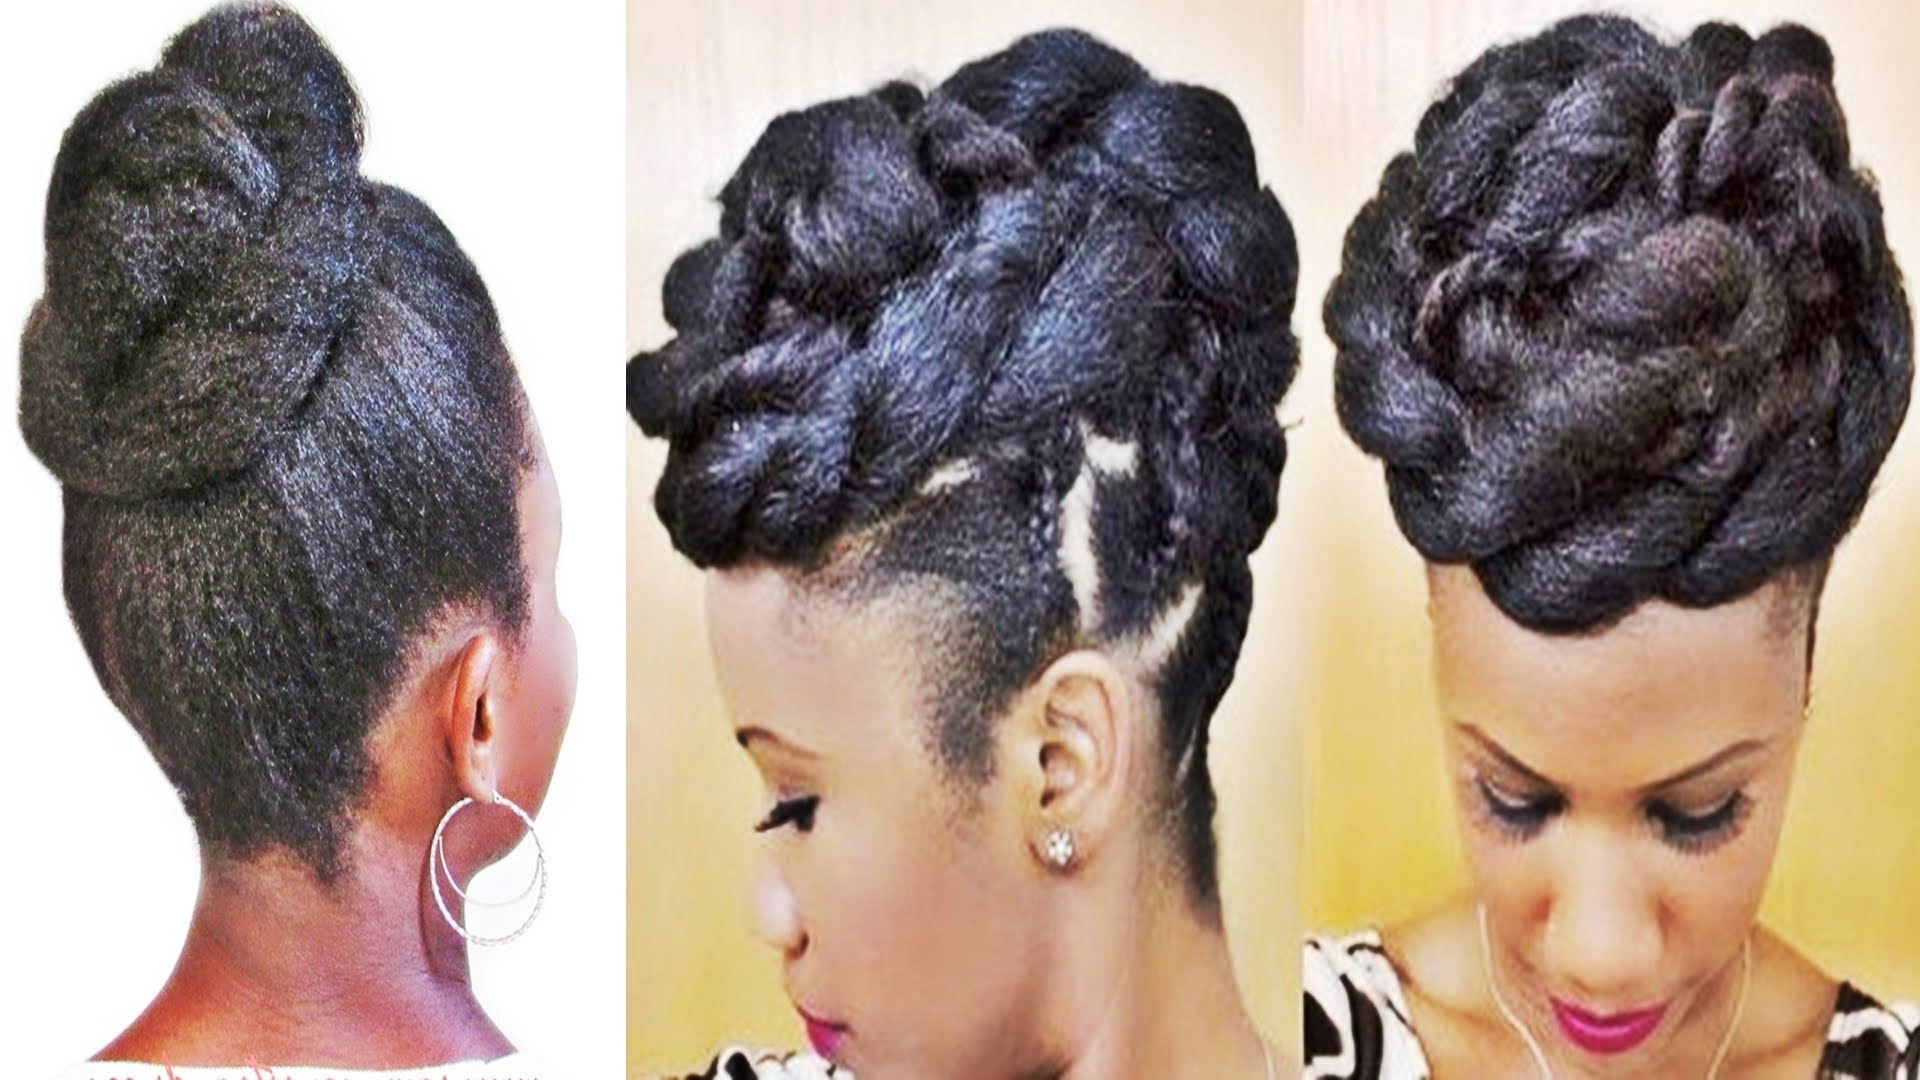 Braids And Twists Updo Hairstyle For Black Women – Youtube Within Fashionable Cornrows Upstyle Hairstyles (View 4 of 15)